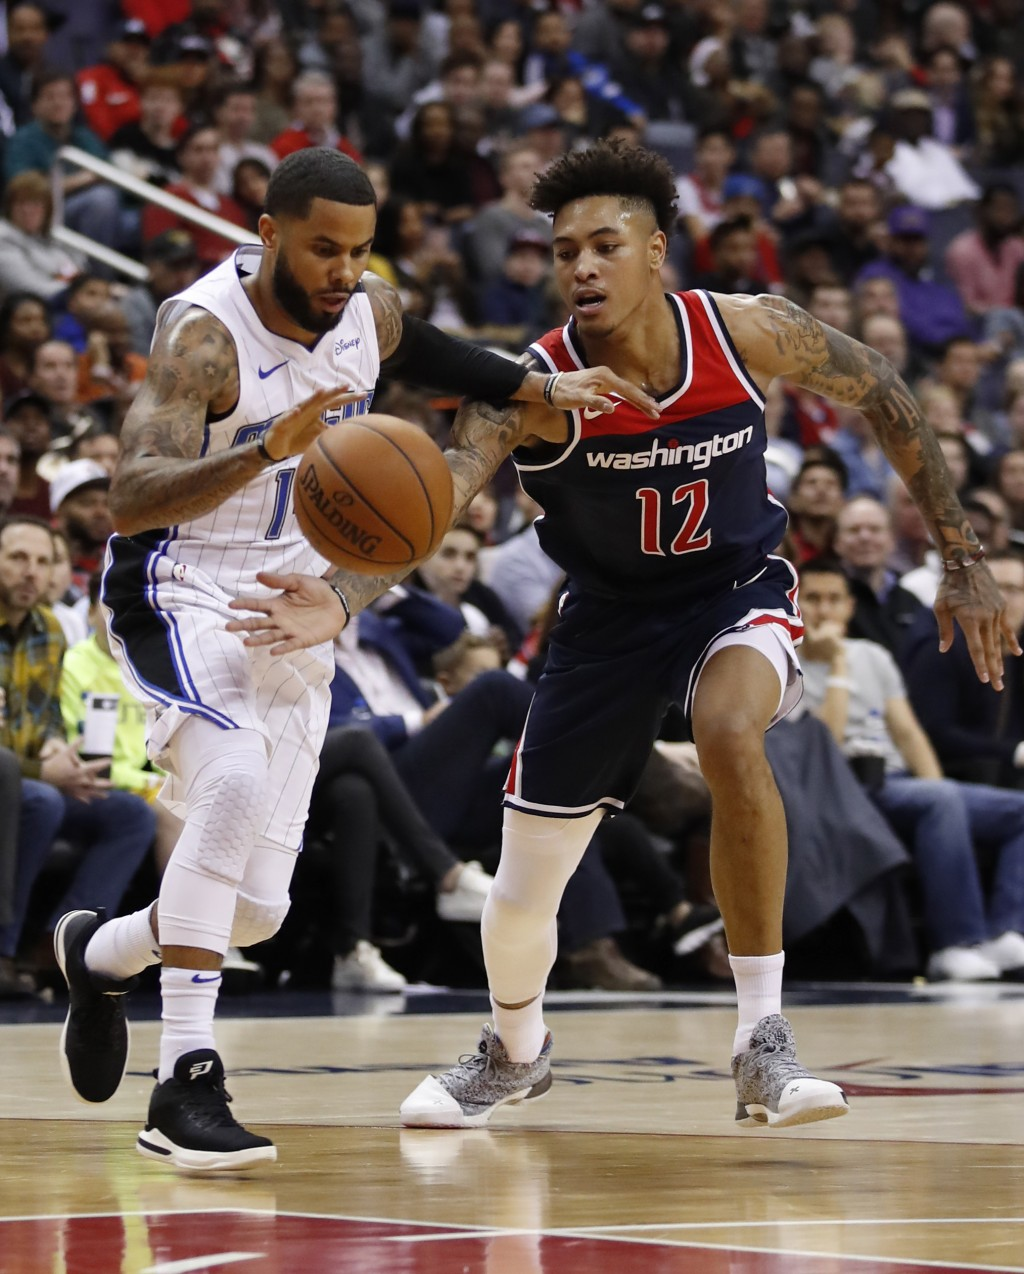 Orlando Magic guard D.J. Augustin, left, drives past Washington Wizards forward Kelly Oubre Jr., during the first half of an NBA basketball game Satur...